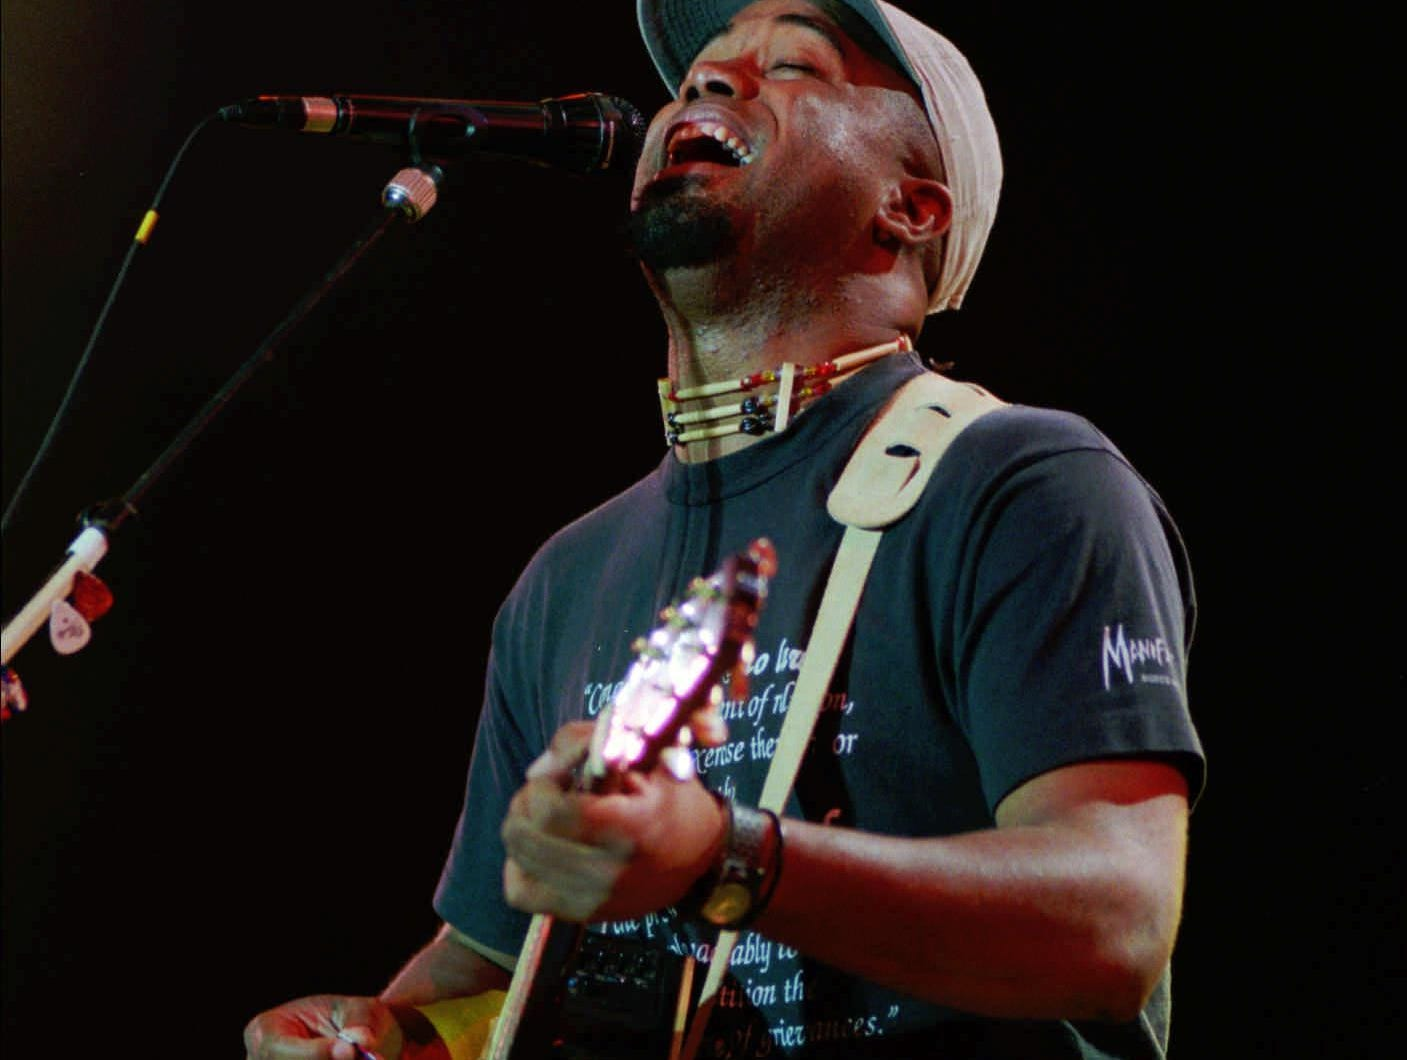 Darius Rucker, lead singer of Hootie and The Blowfish